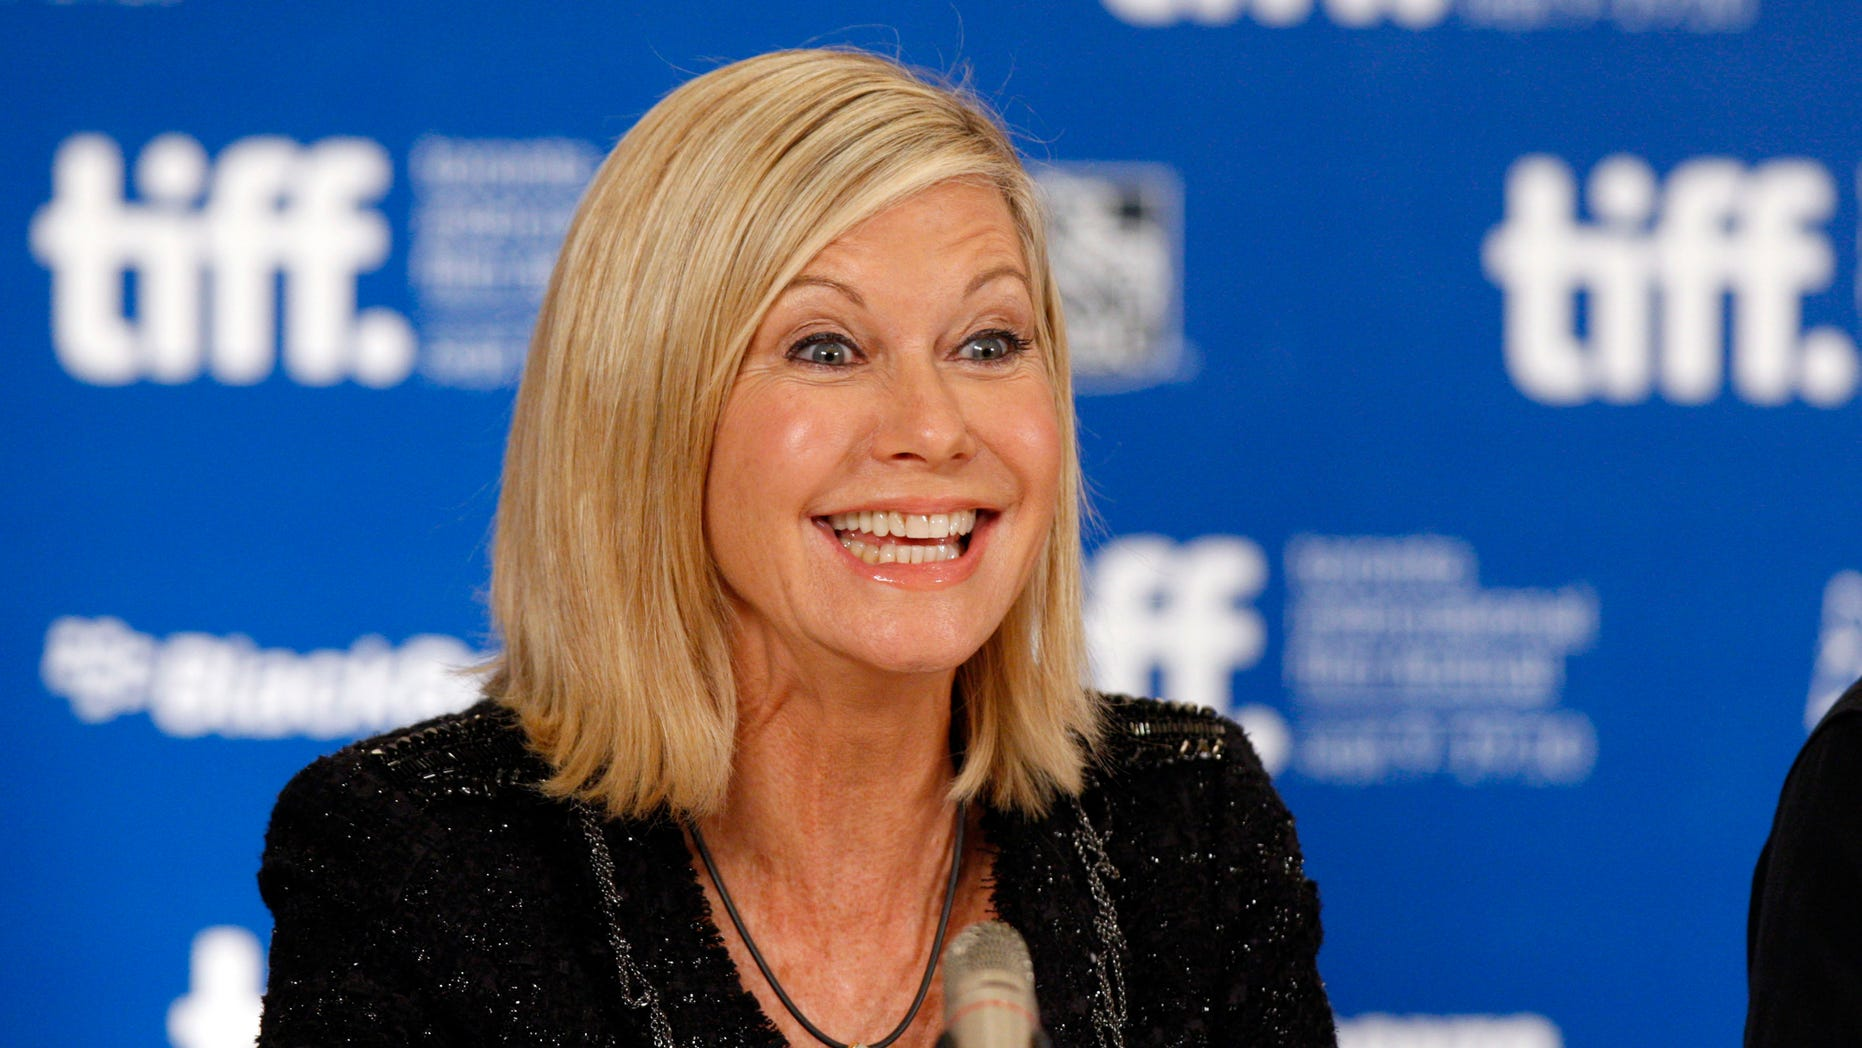 """Australian actress Olivia Newton-John smiles during the news conference for the film """"Score: A Hockey Musical"""" at the 35thToronto International Film Festival September 10, 2010.   REUTERS/Mike Cassese   (CANADA - Tags: ENTERTAINMENT PROFILE) - RTR2I5O6"""